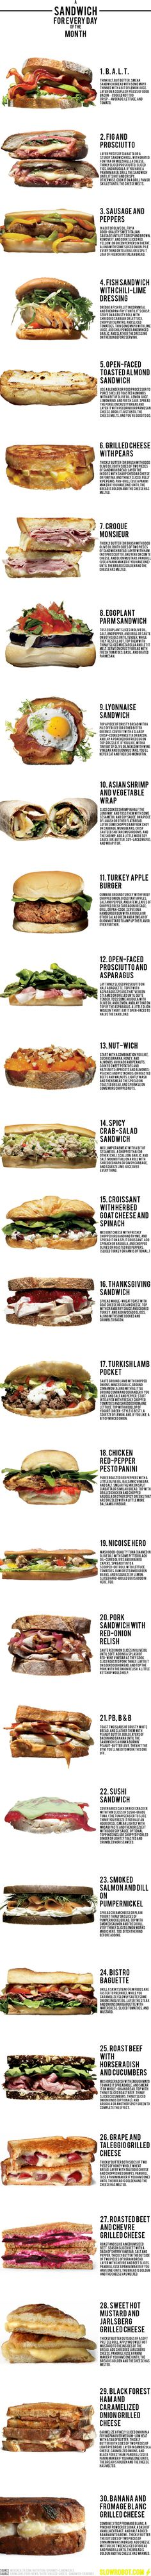 A sandwich for every day of the month . . .